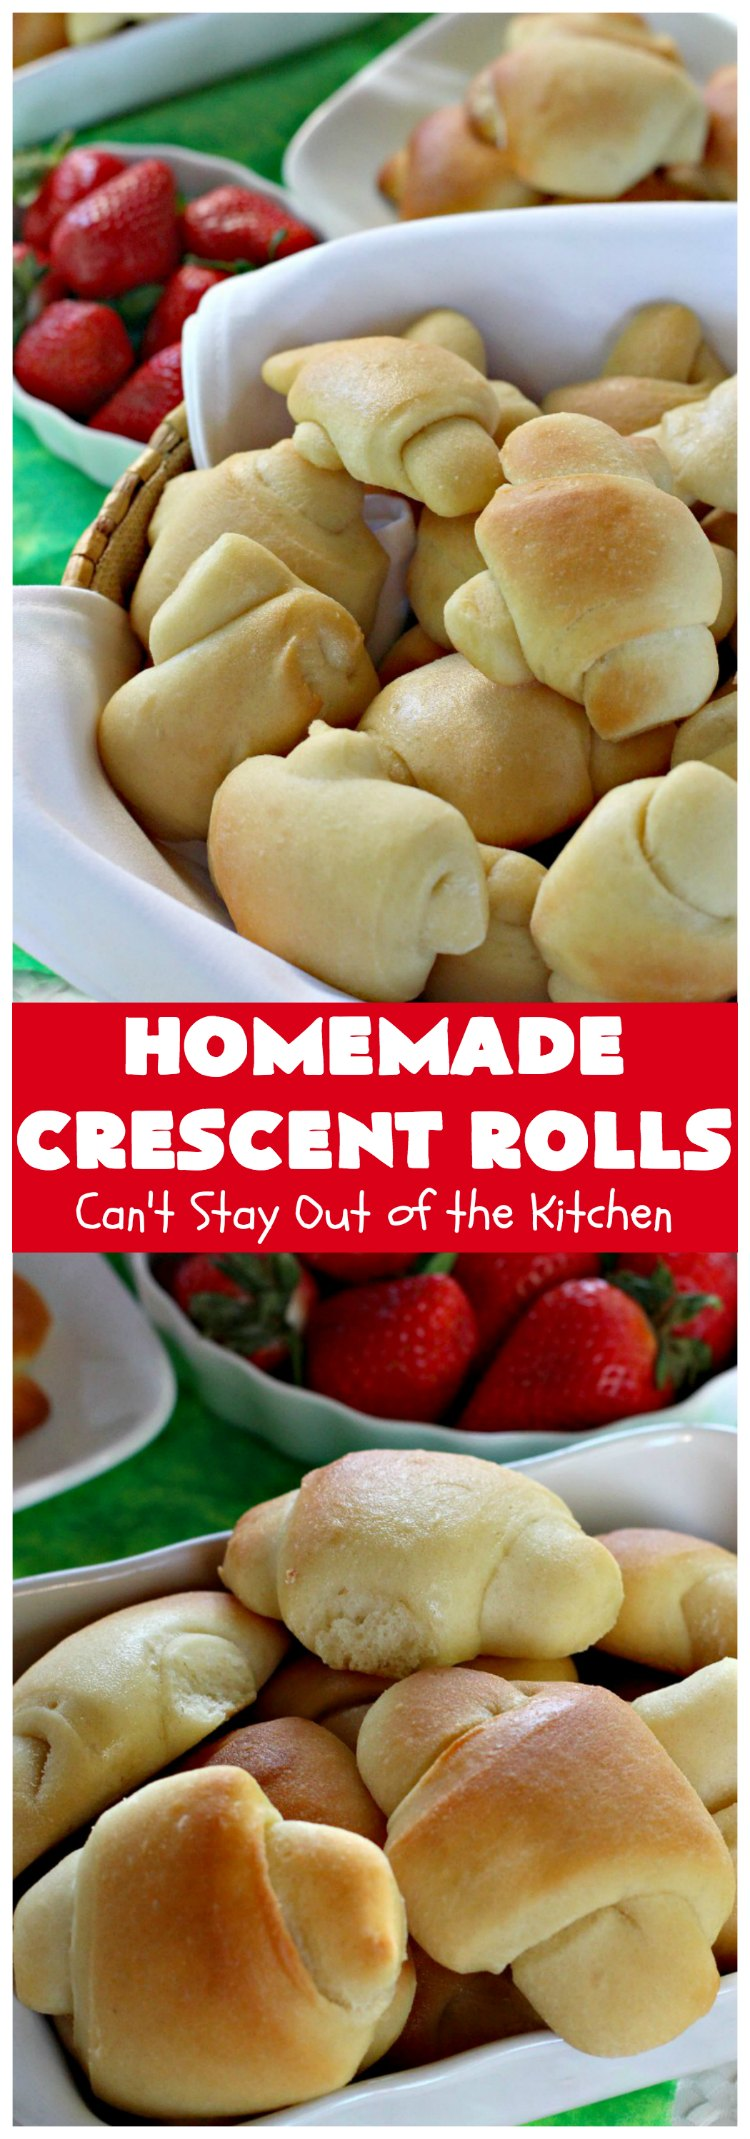 Homemade Crescent Rolls | Can't Stay Out of the Kitchen